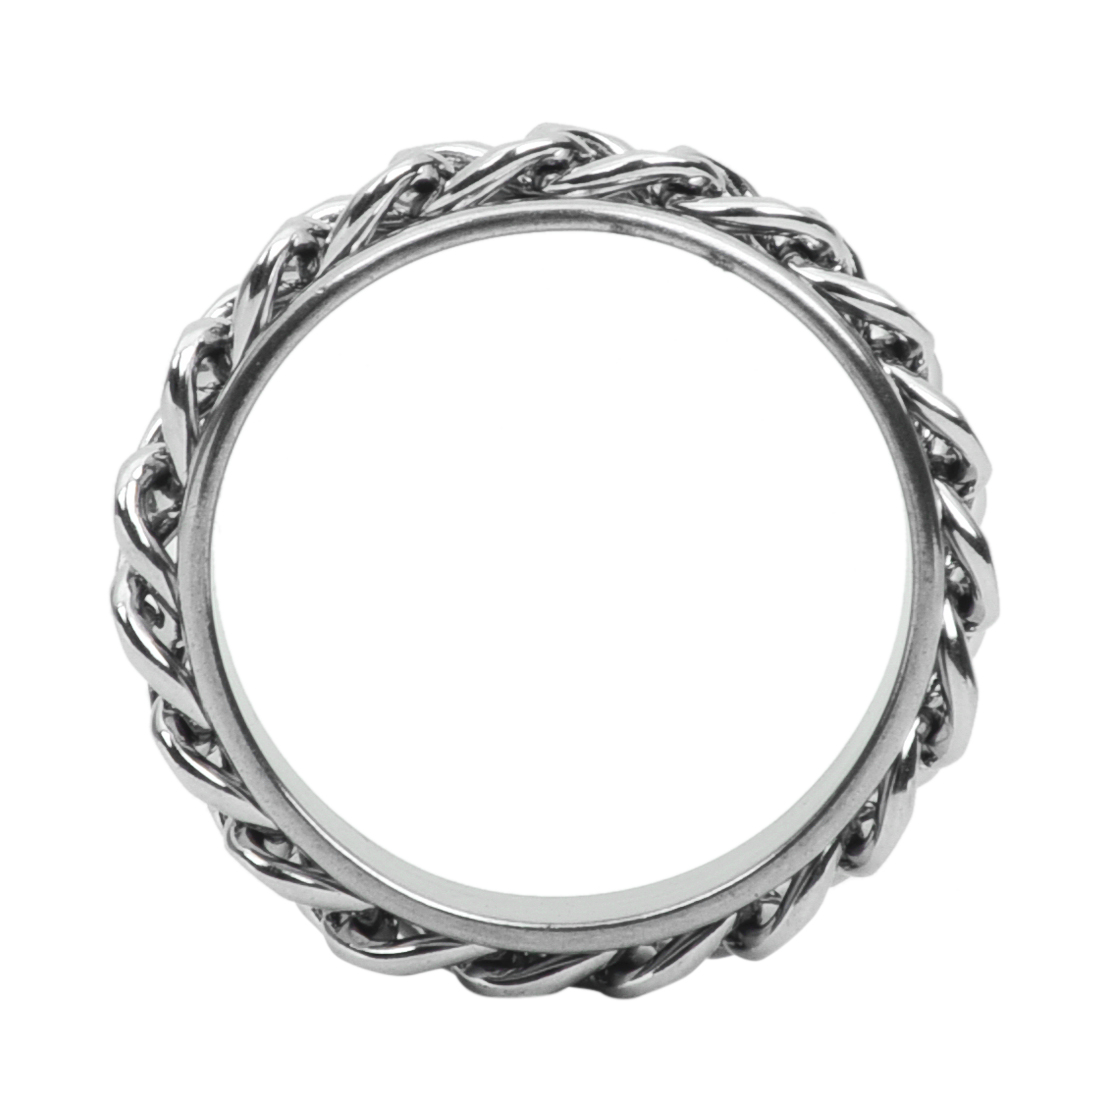 Men's Stainless Steel Curb Chain Band Ring UK Size: T 1/2 - Silver B4M7 G4H6